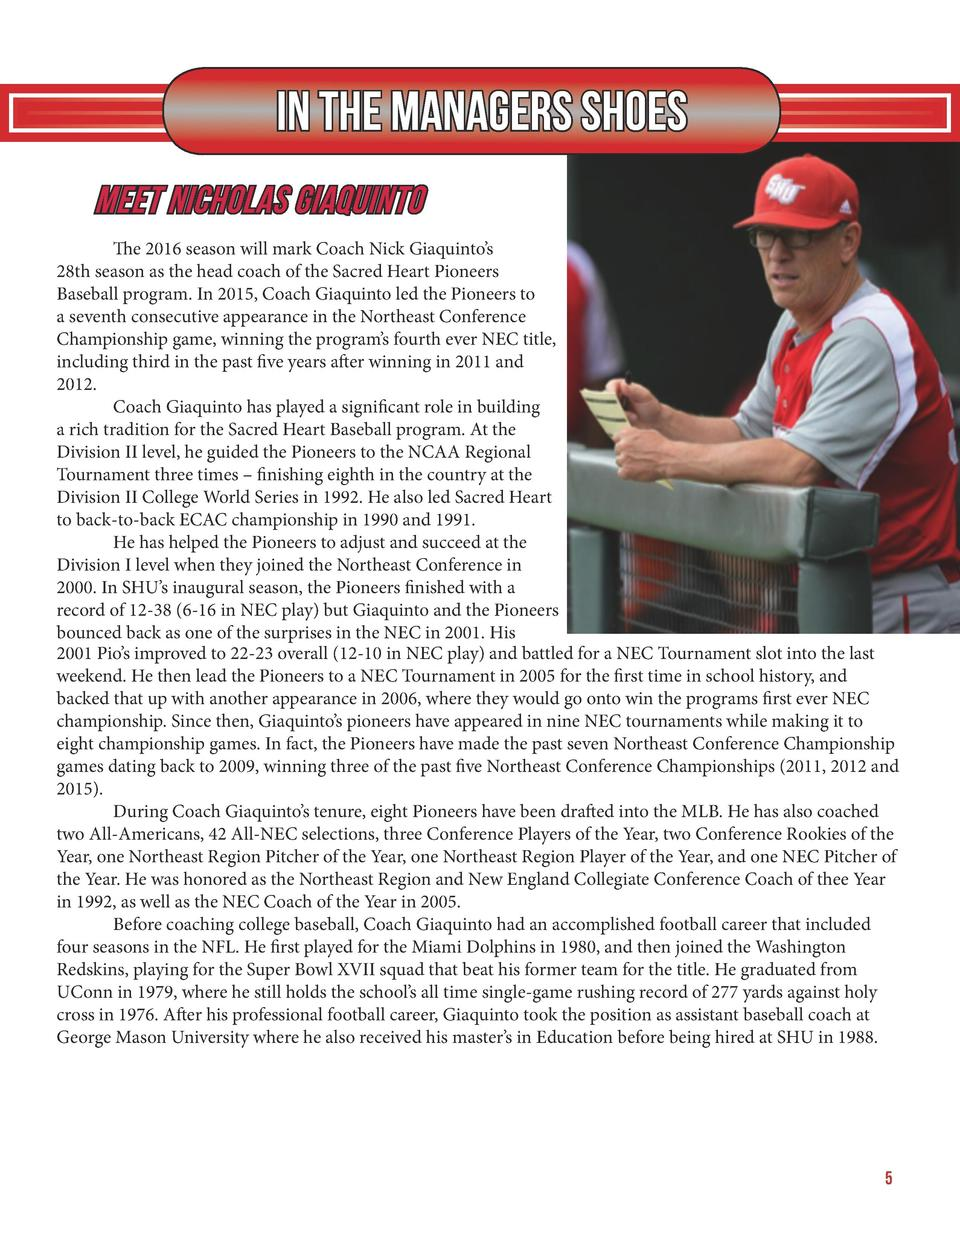 In The Managers Shoes Meet Nicholas Giaquinto   The 2016 season will mark Coach Nick Giaquinto   s 28th season as the head...